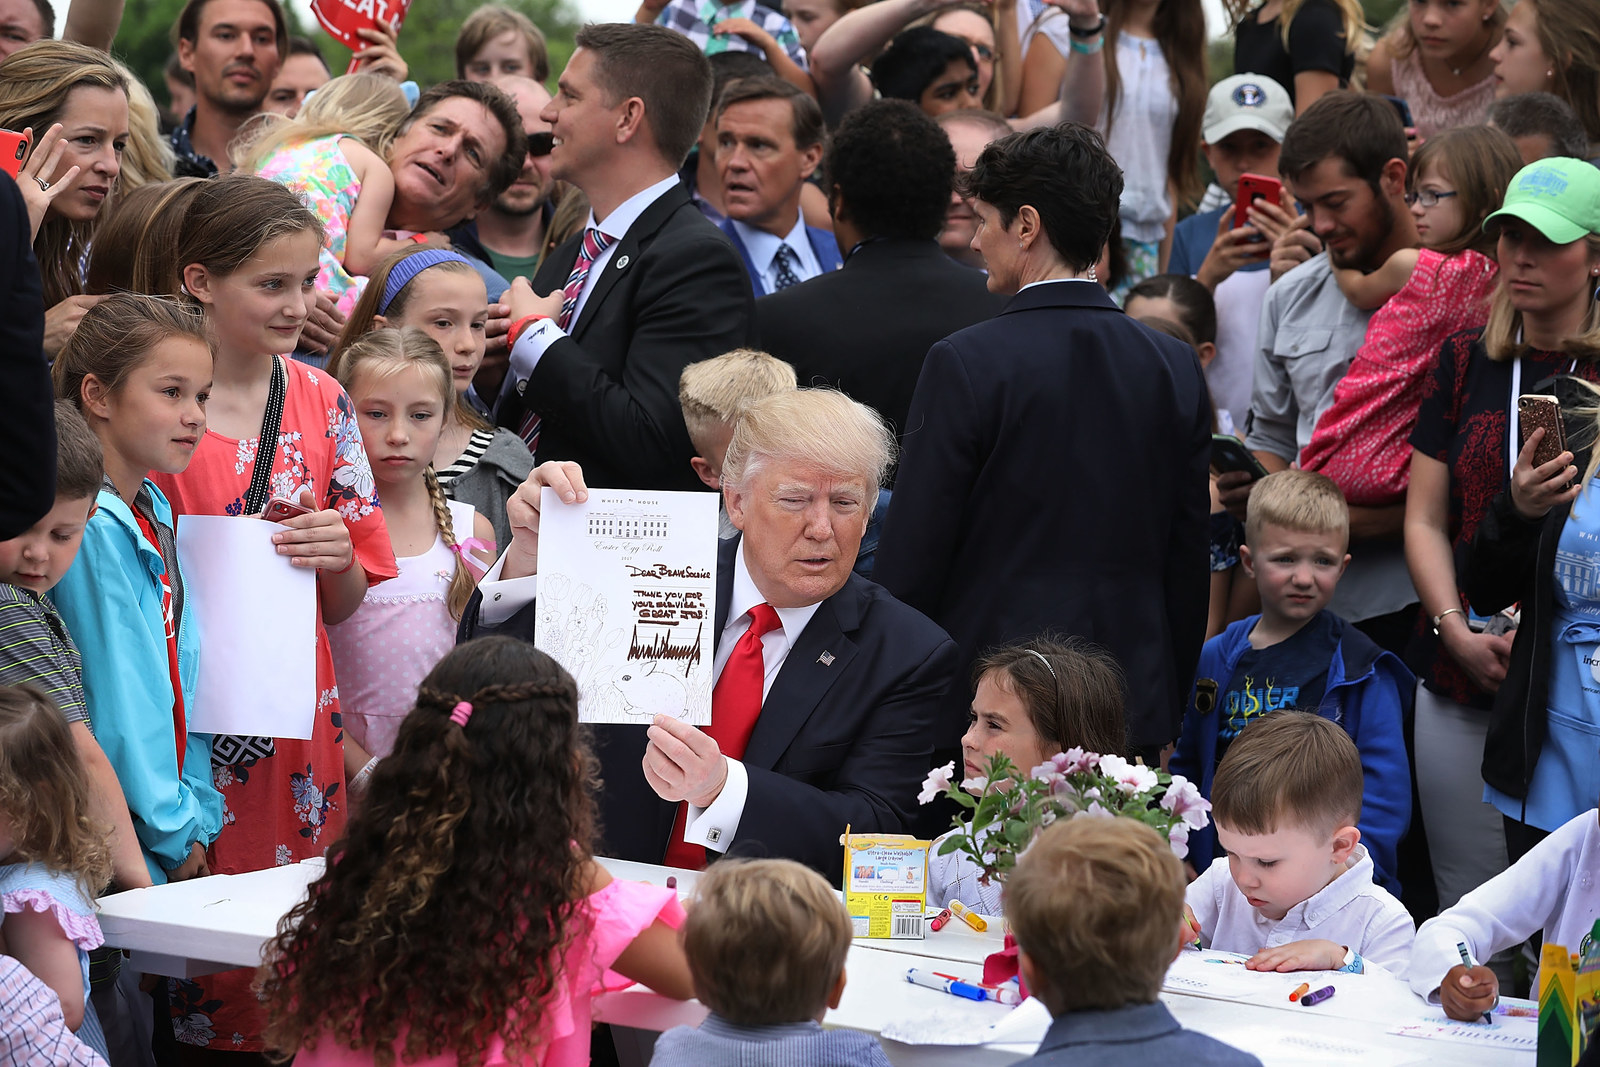 Kids Are Quoting Trump To Bully Their >> Flipboard Kids Are Quoting Trump To Bully Their Classmates And